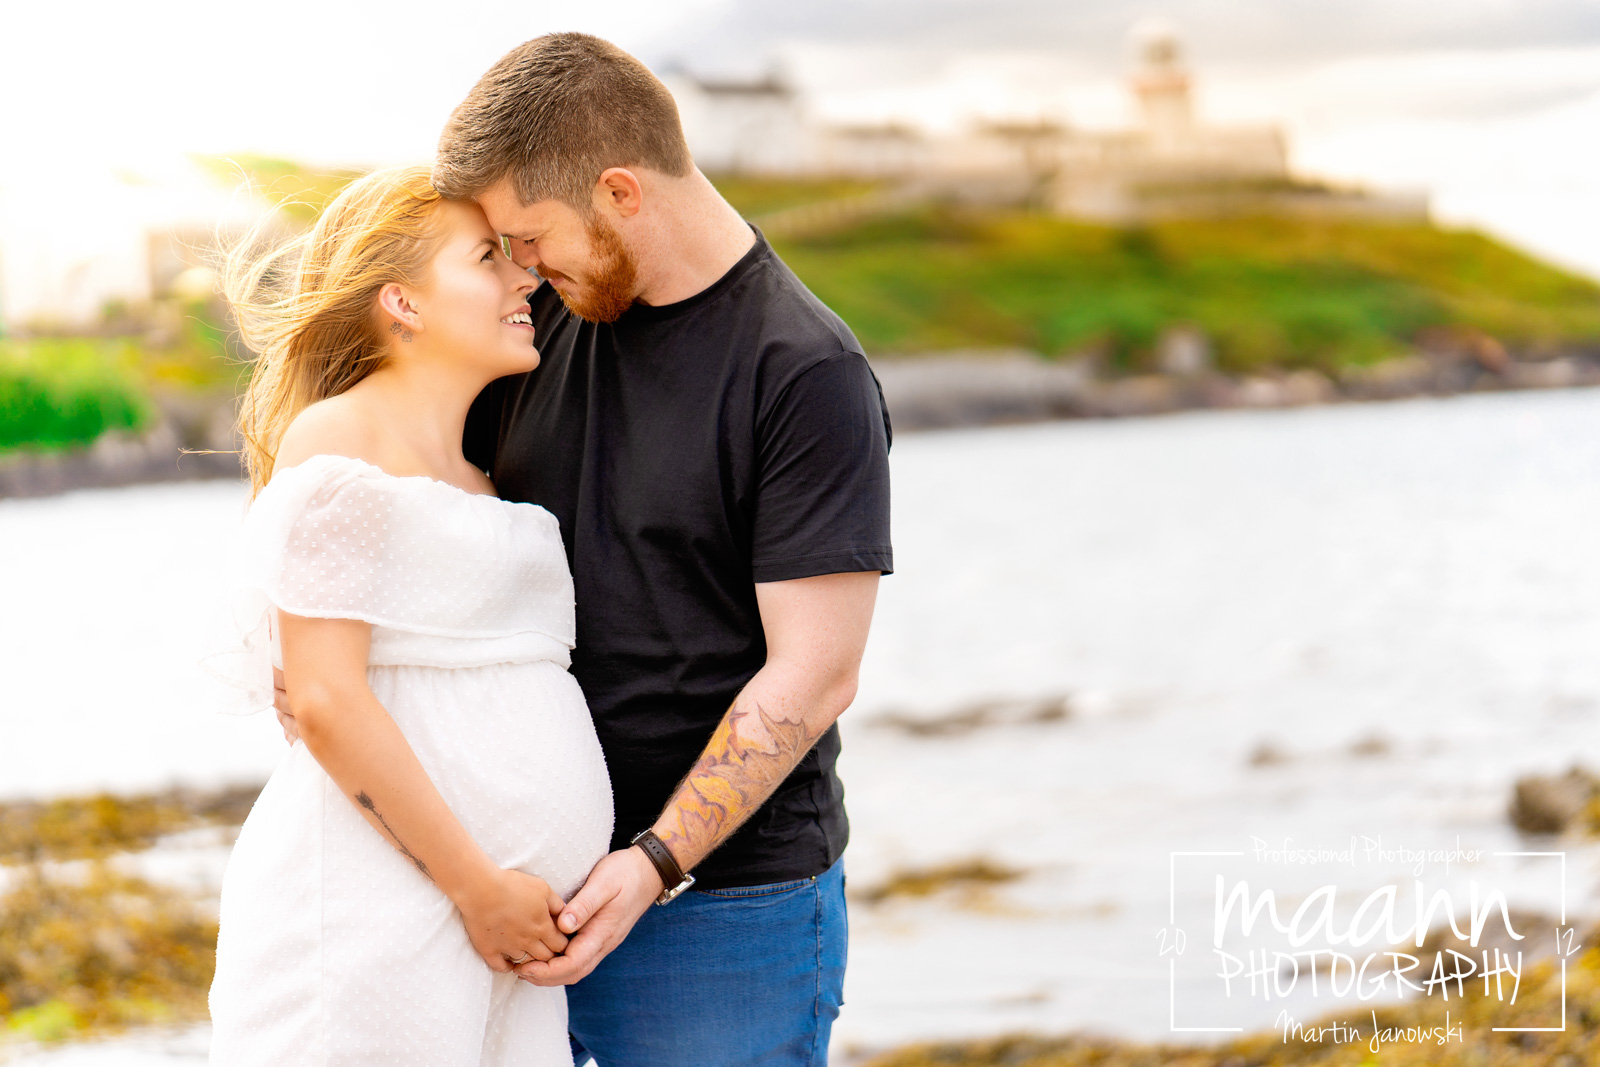 Jodie & Michael – Maternity Photography | Outdoor Photo Session